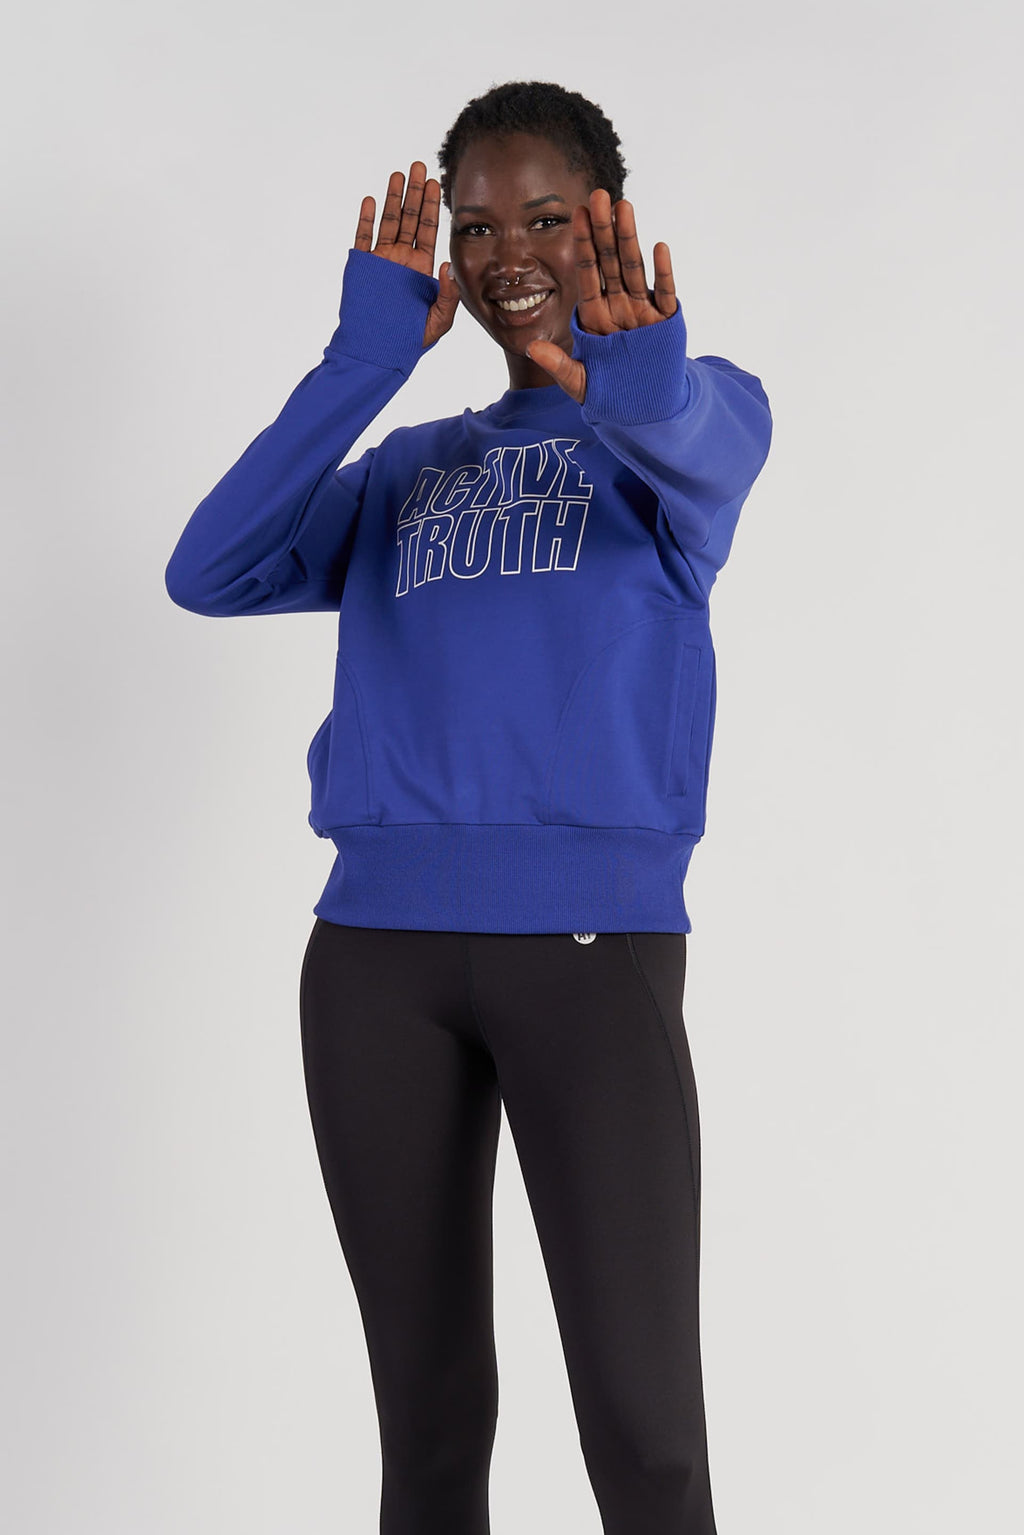 Studio Sweatshirt - Classic Blue from Active Truth USA